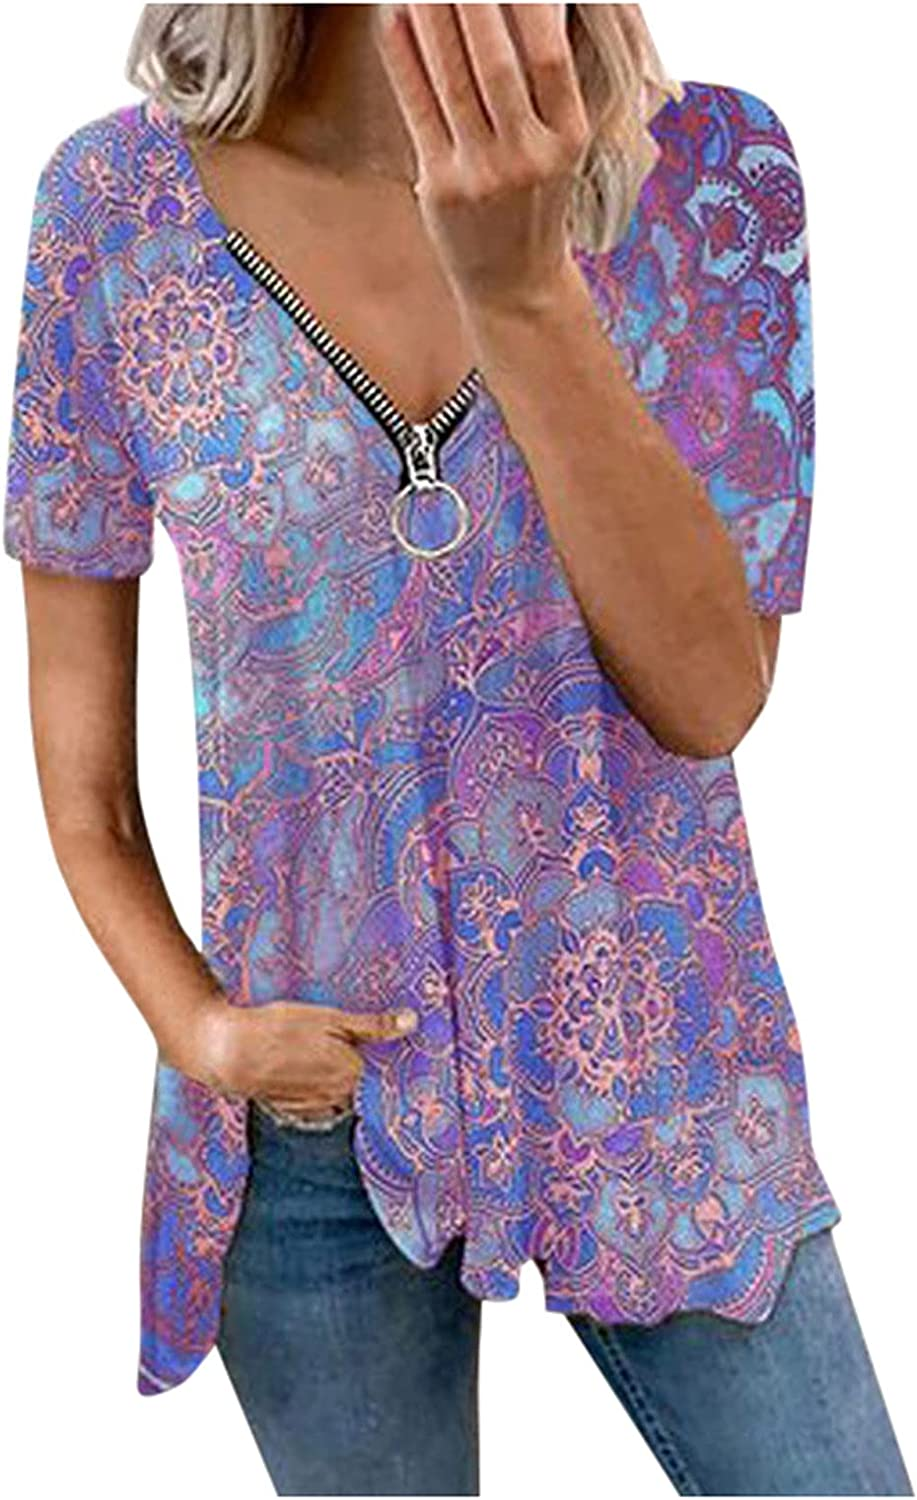 Fankle Plus Size Printed Pleated Tunics Tops for Women, Sexy Short Sleeve T Shirts Summer Casual Blouses with Zipper